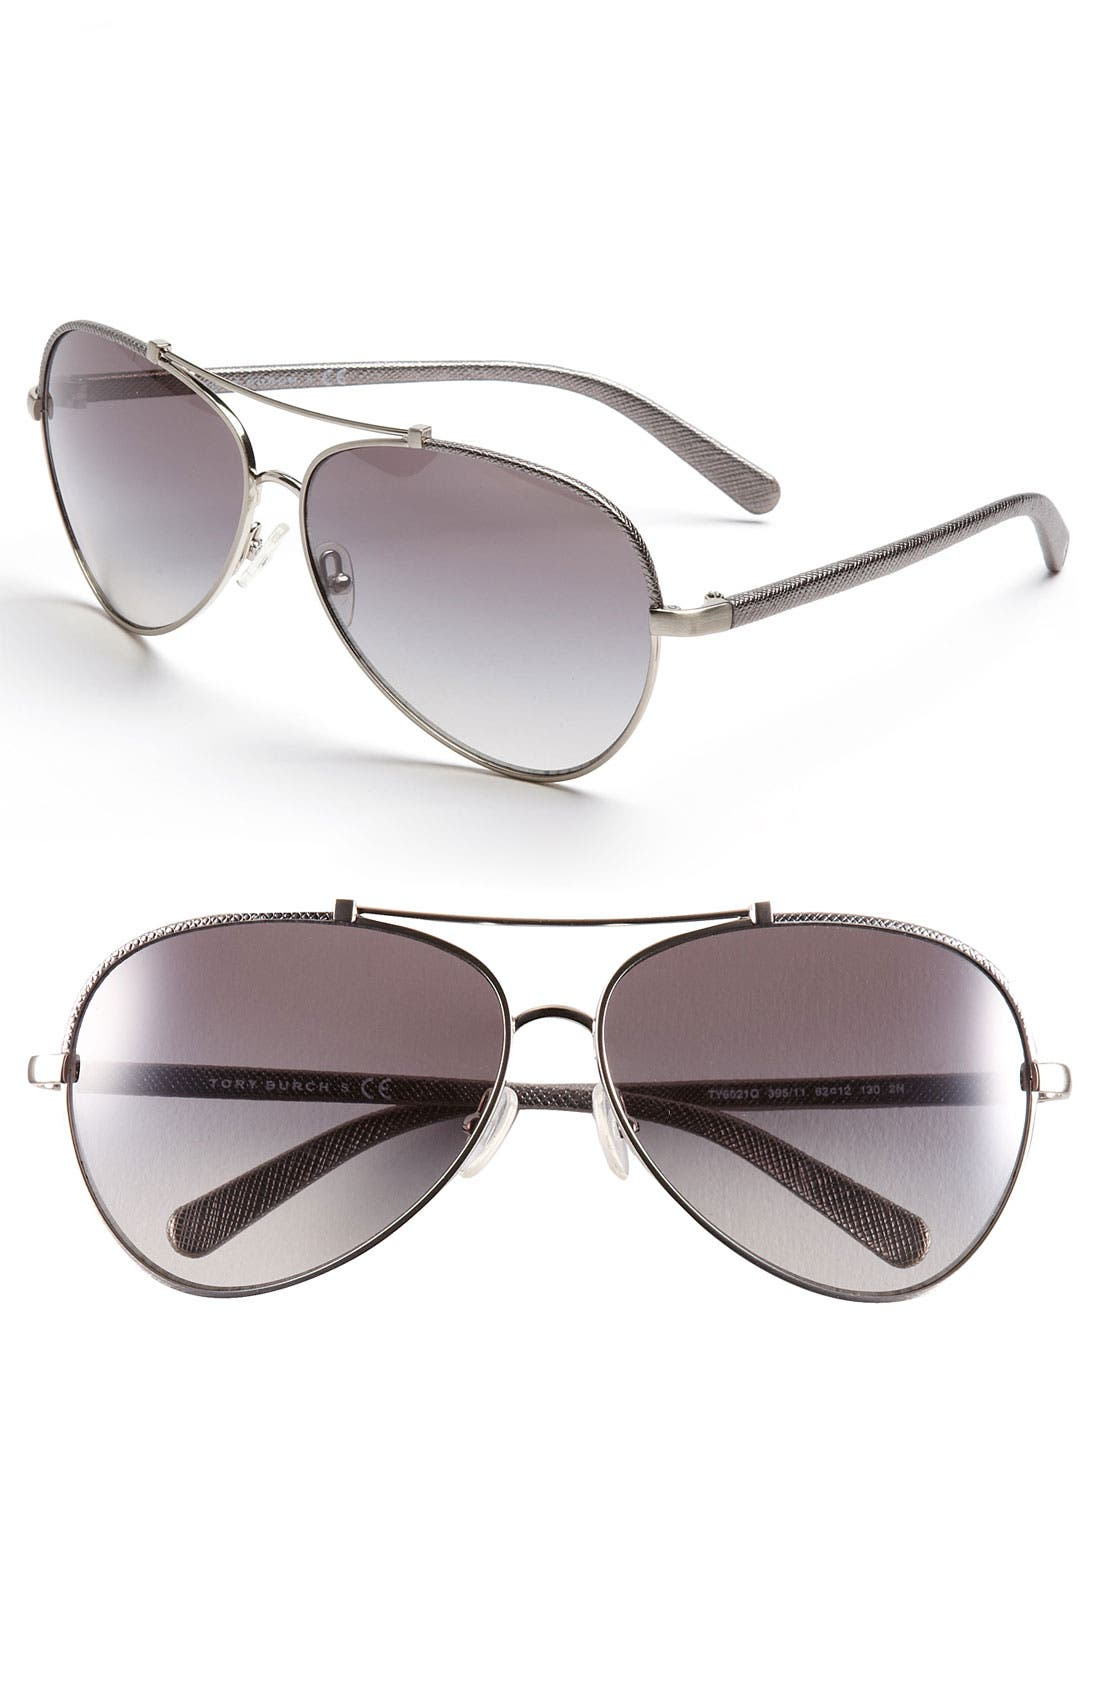 Main Image - Tory Burch 62mm Aviator Sunglasses